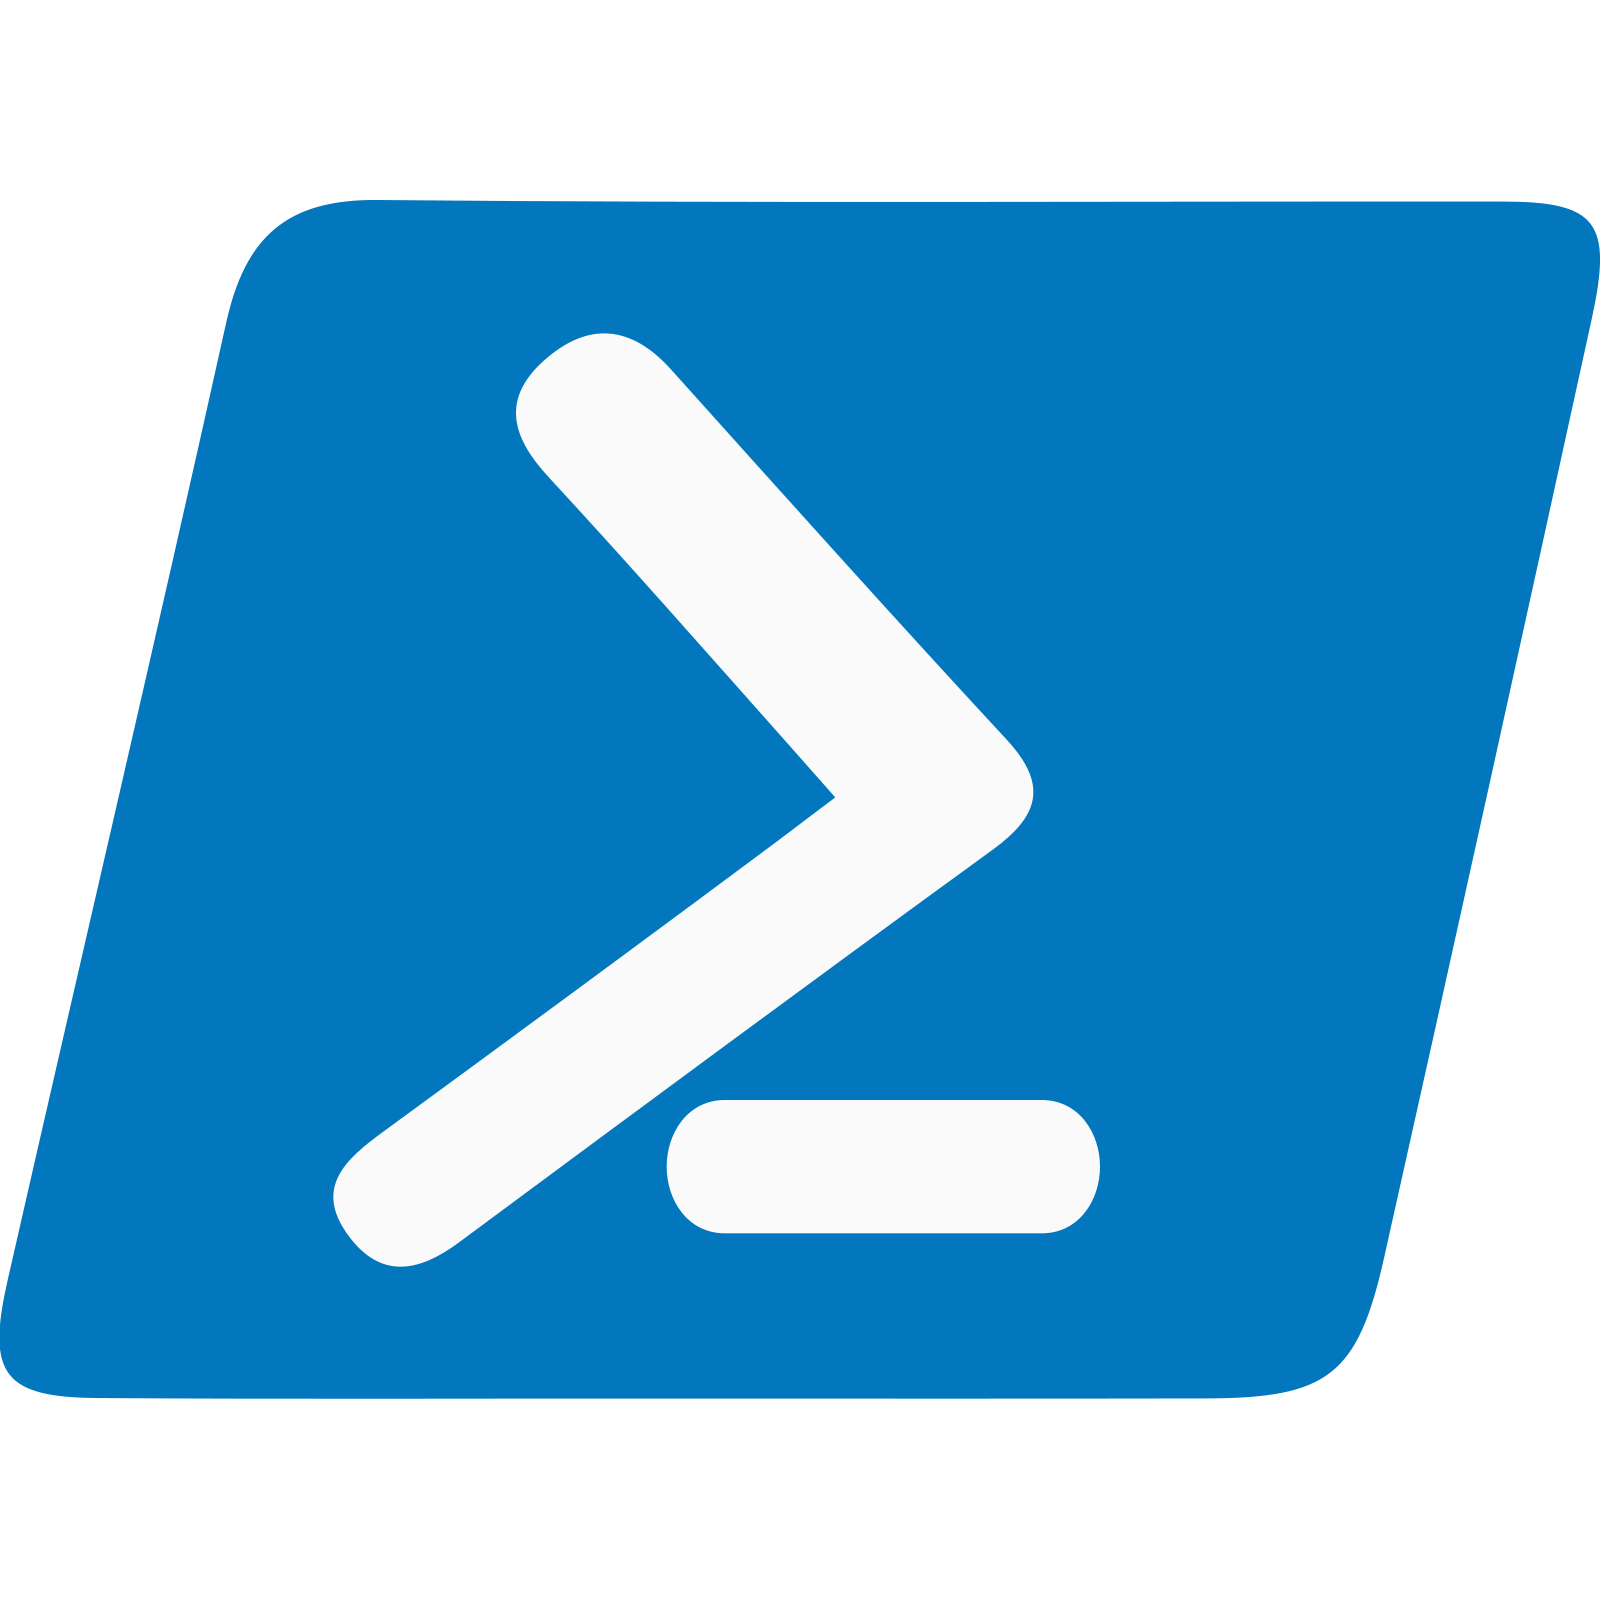 Episode 11: Chattanooga PowerShell Saturday with Jeff Hicks, Michael Lombardi, and Mike Robbins